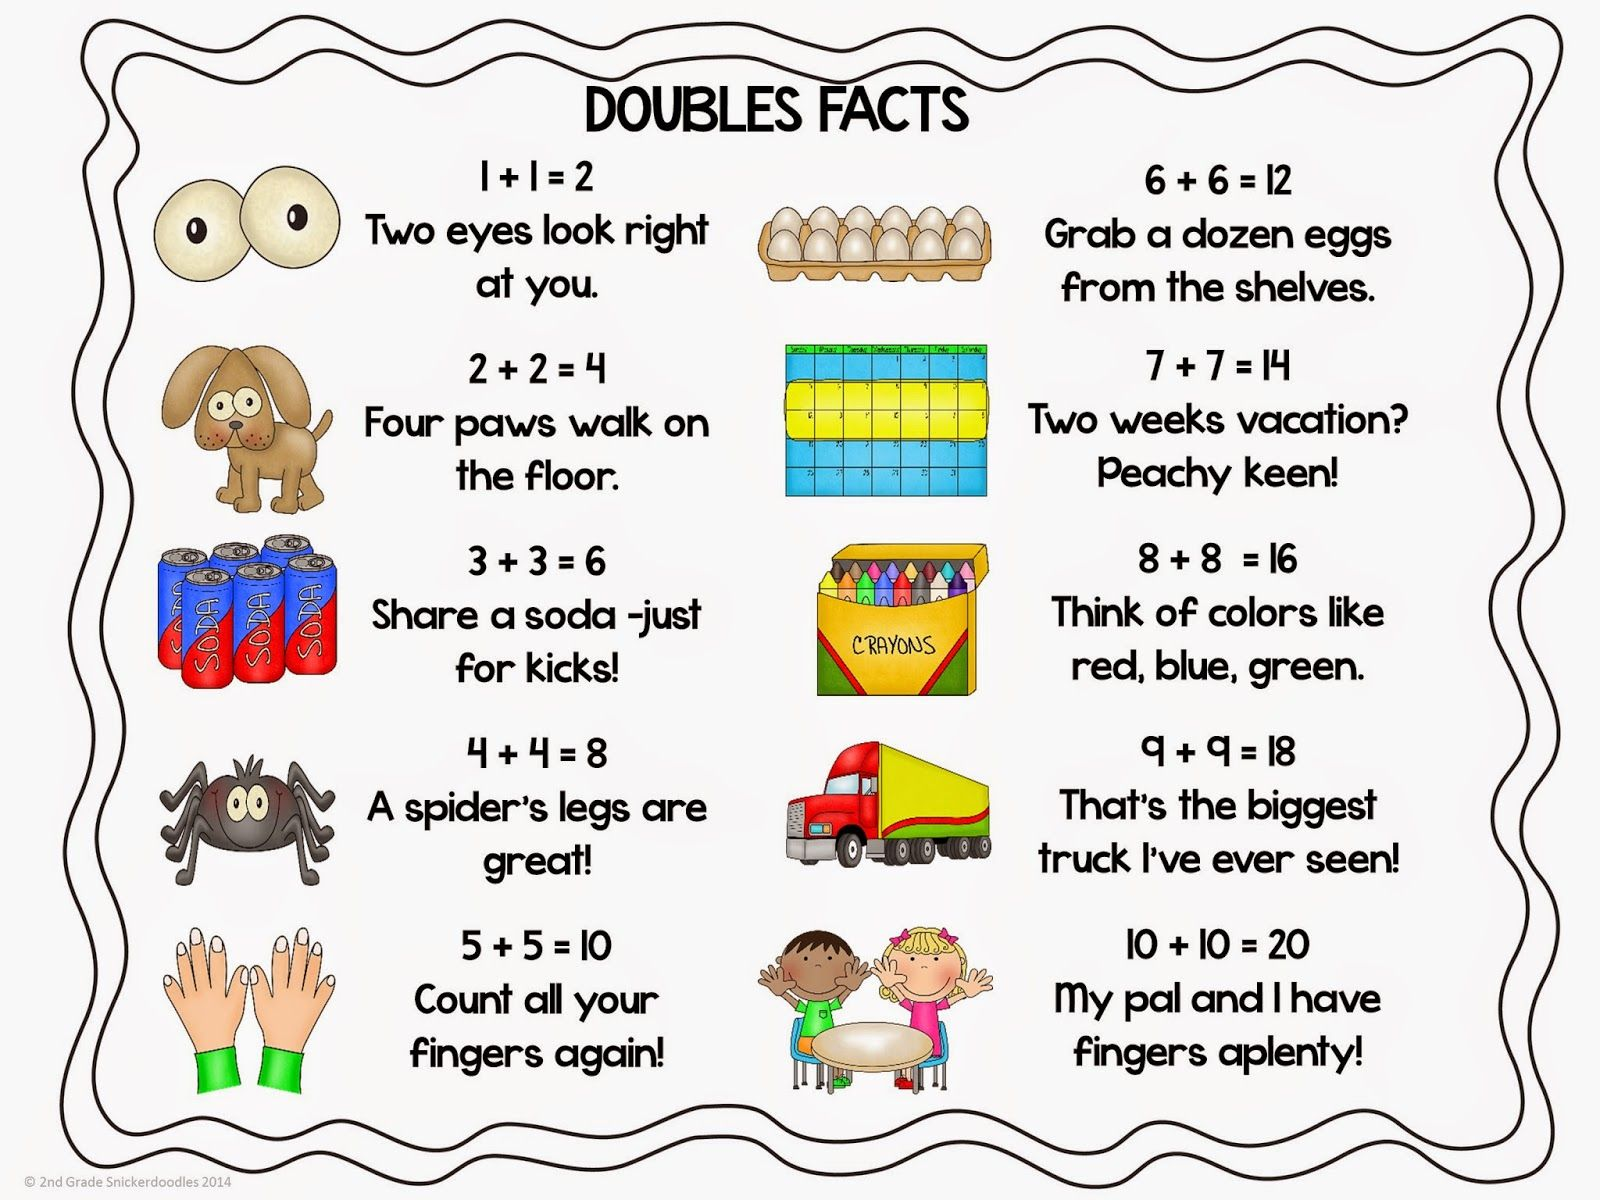 2nd Grade Snickerdoodles Doubles Facts Freebie 2nd